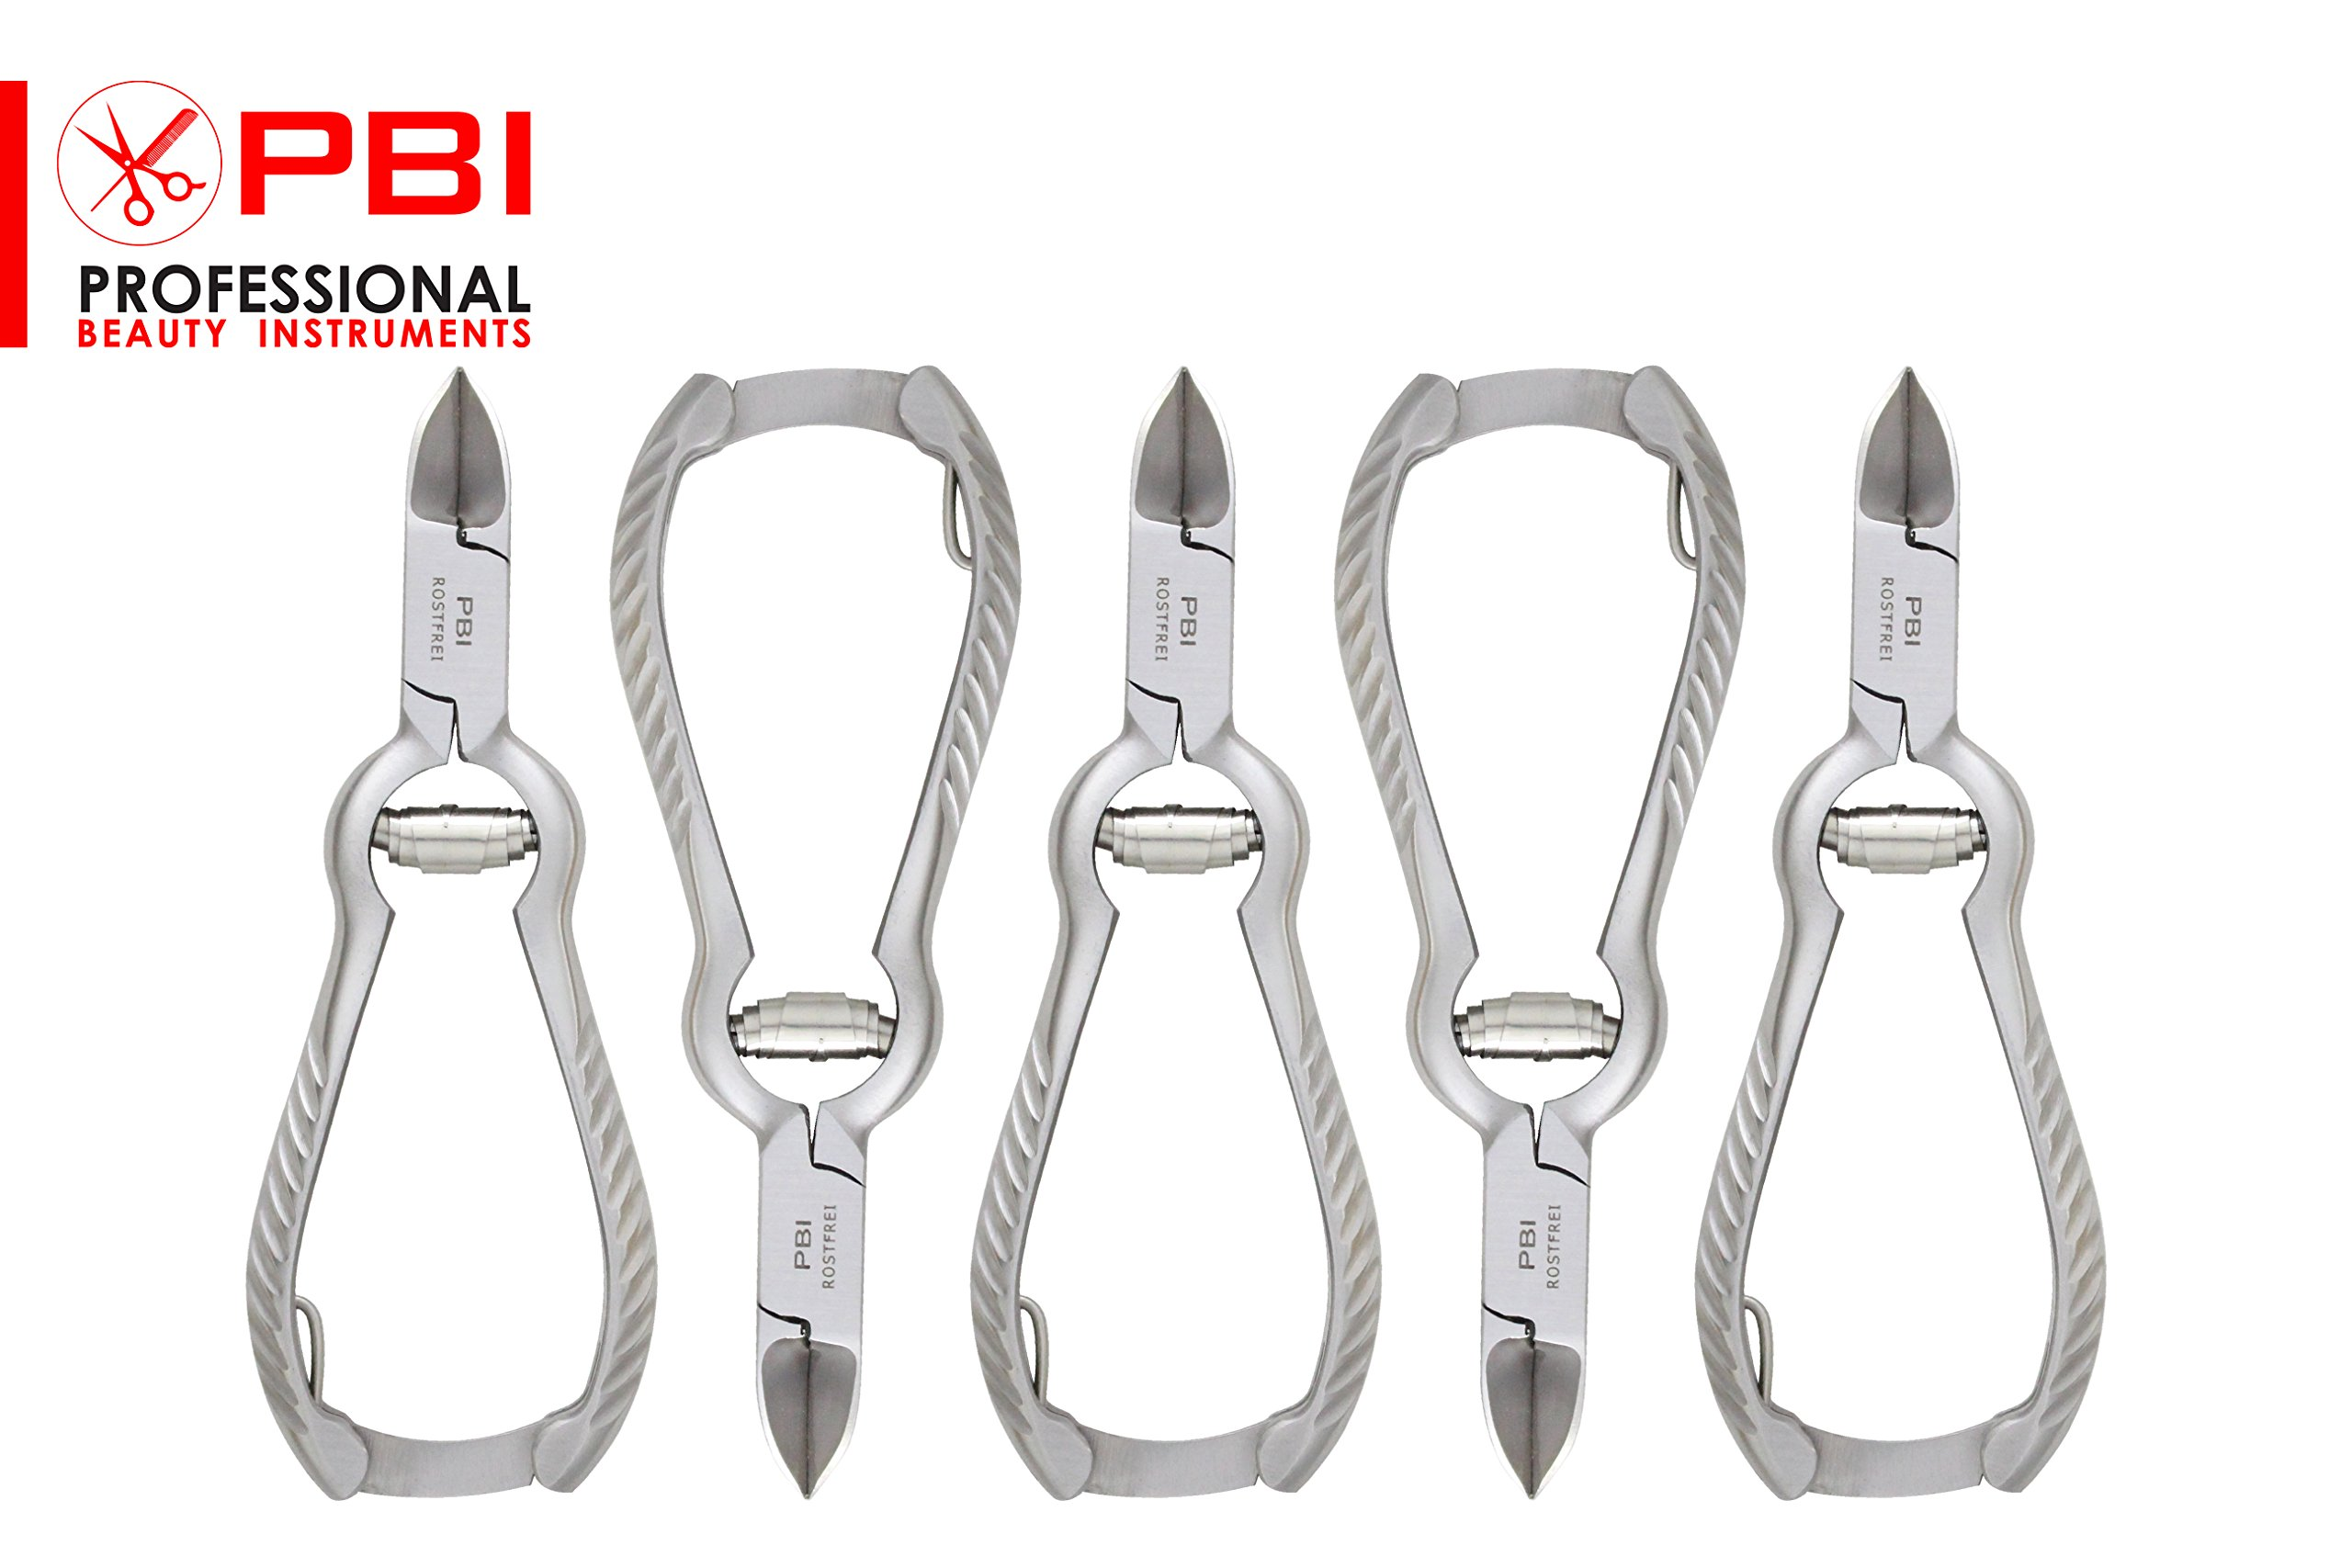 Nail Nipper Manicure, Pedicure Clippers For Ingrowing Nails With Safety Lock ( 5 Pieces Set ) From PBI